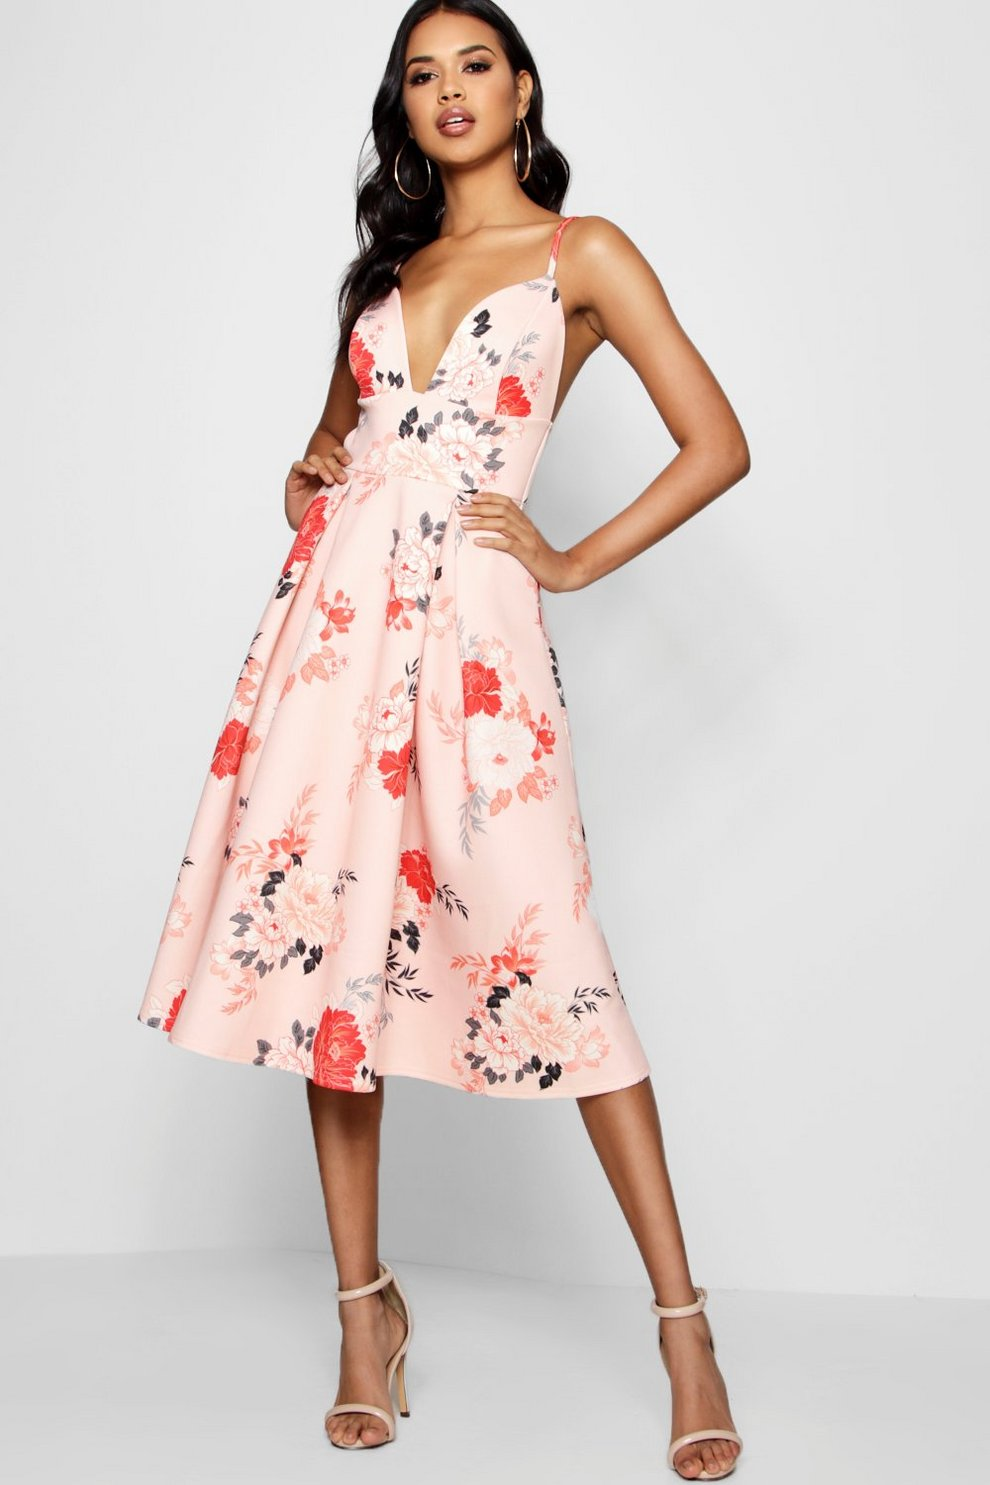 cff97d4f9dbf Womens Blush Floral Scuba Frill Skirt Midi Skater Dress. Hover to zoom